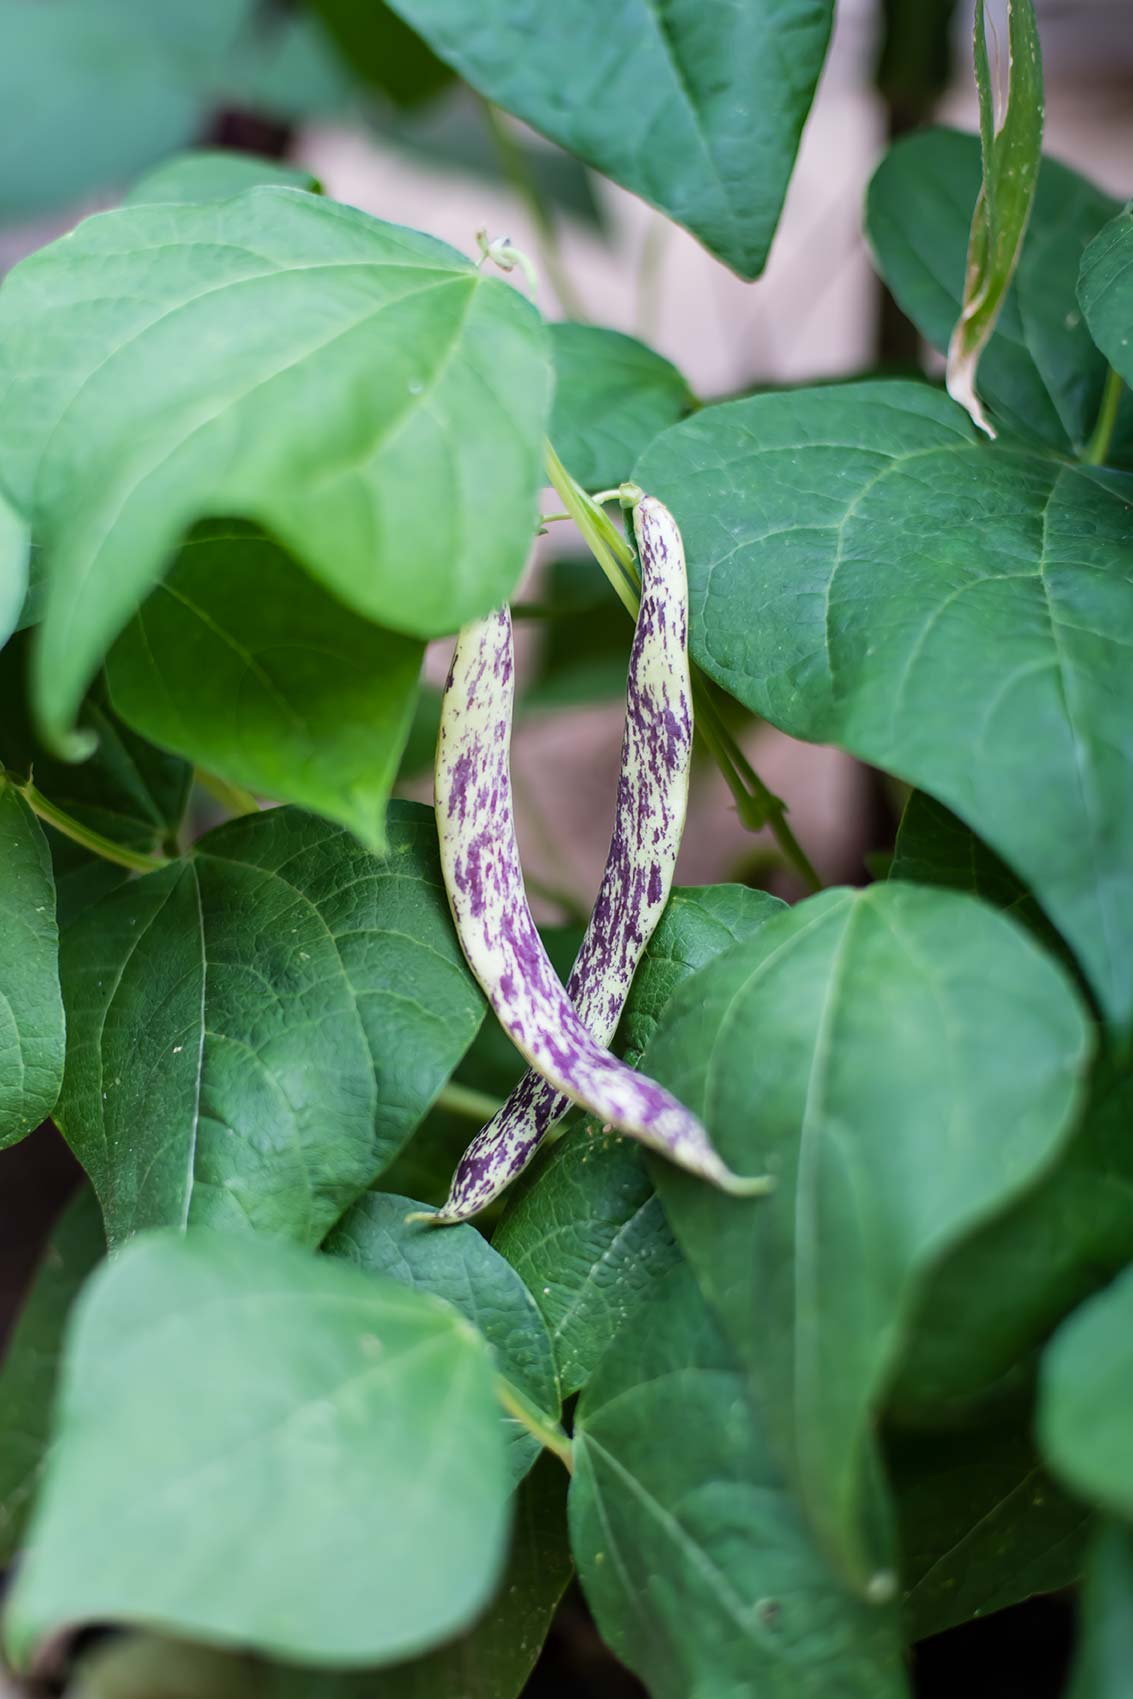 Dragon tongue beans growing on vine